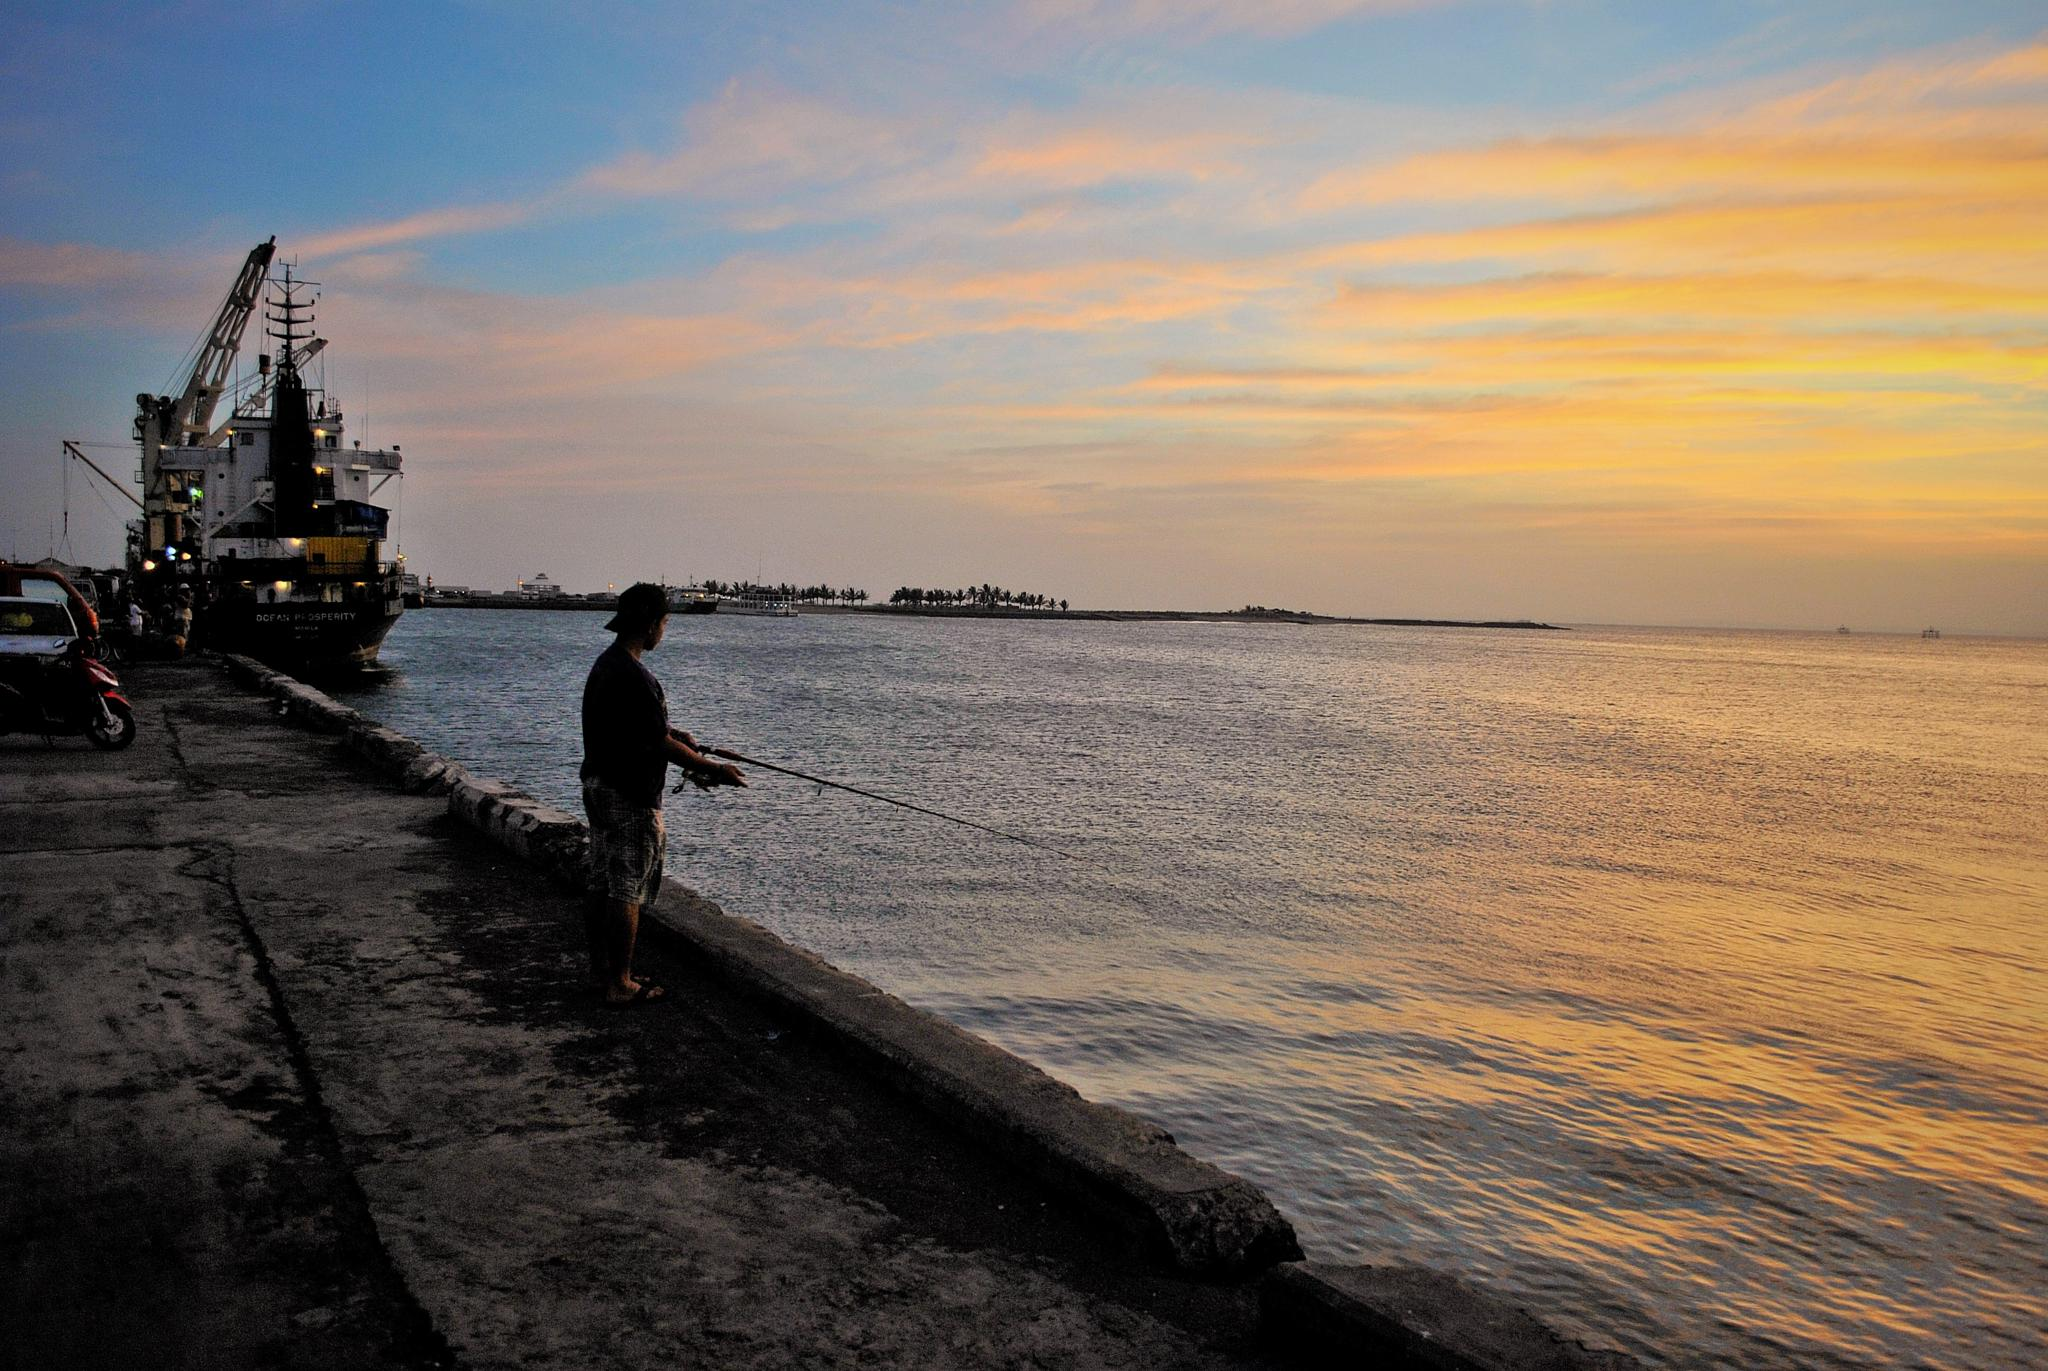 Sunset fishing by george